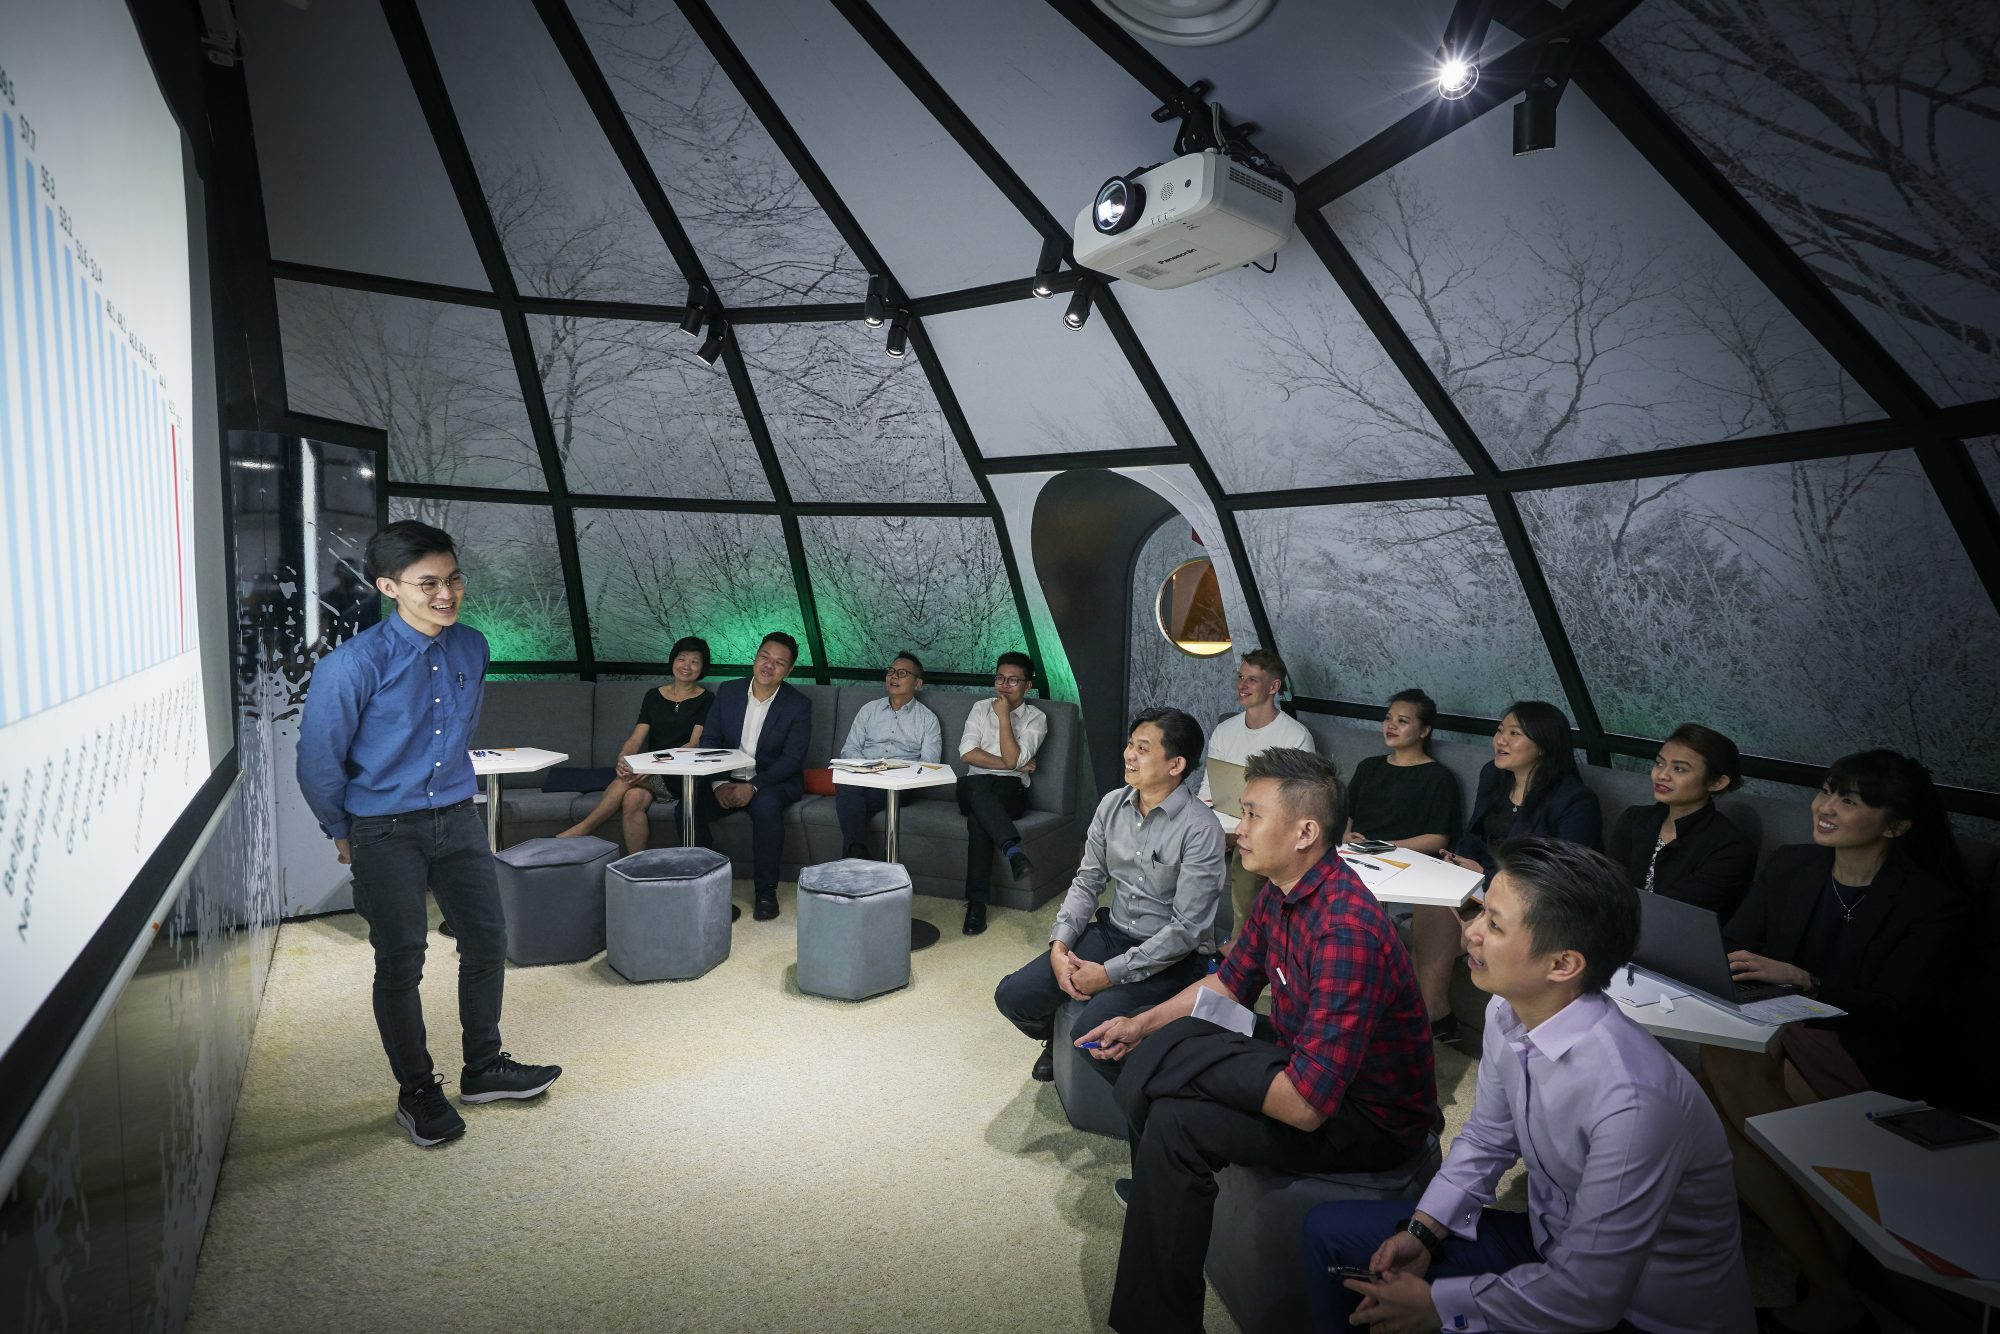 huone-singapore-business-events-igloo